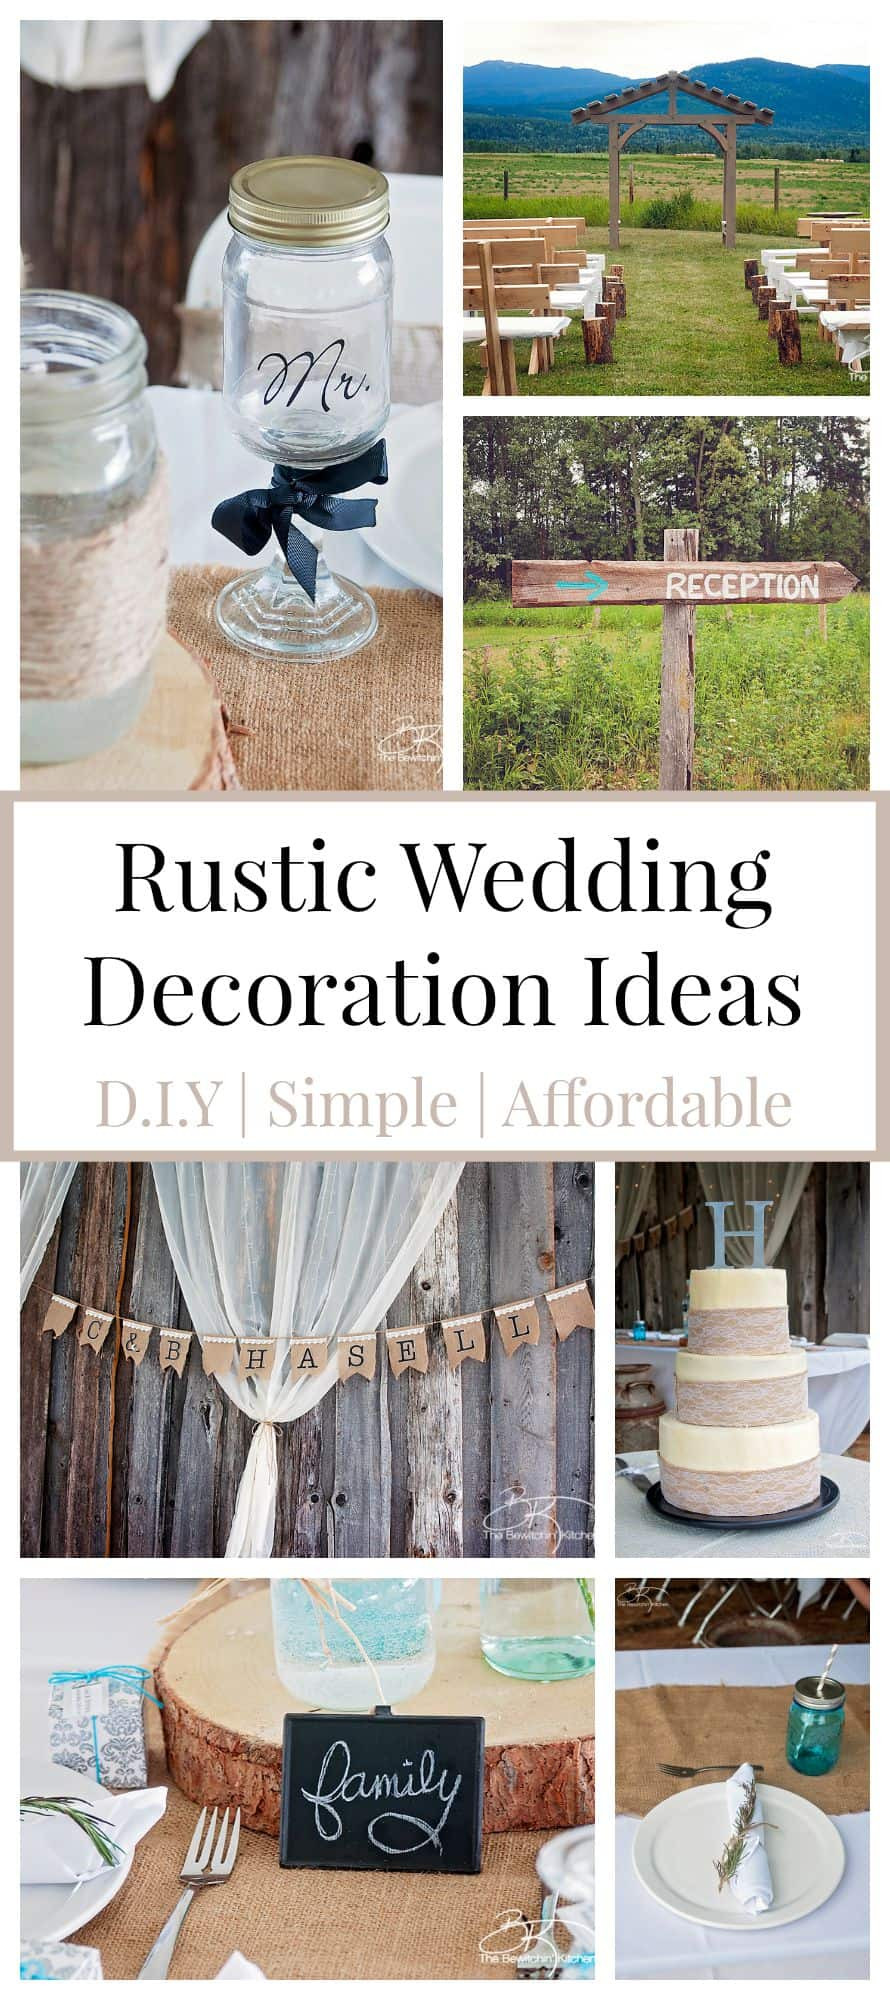 Best ideas about DIY Rustic Wedding Decorations . Save or Pin Rustic Wedding Ideas That Are DIY & Affordable Now.